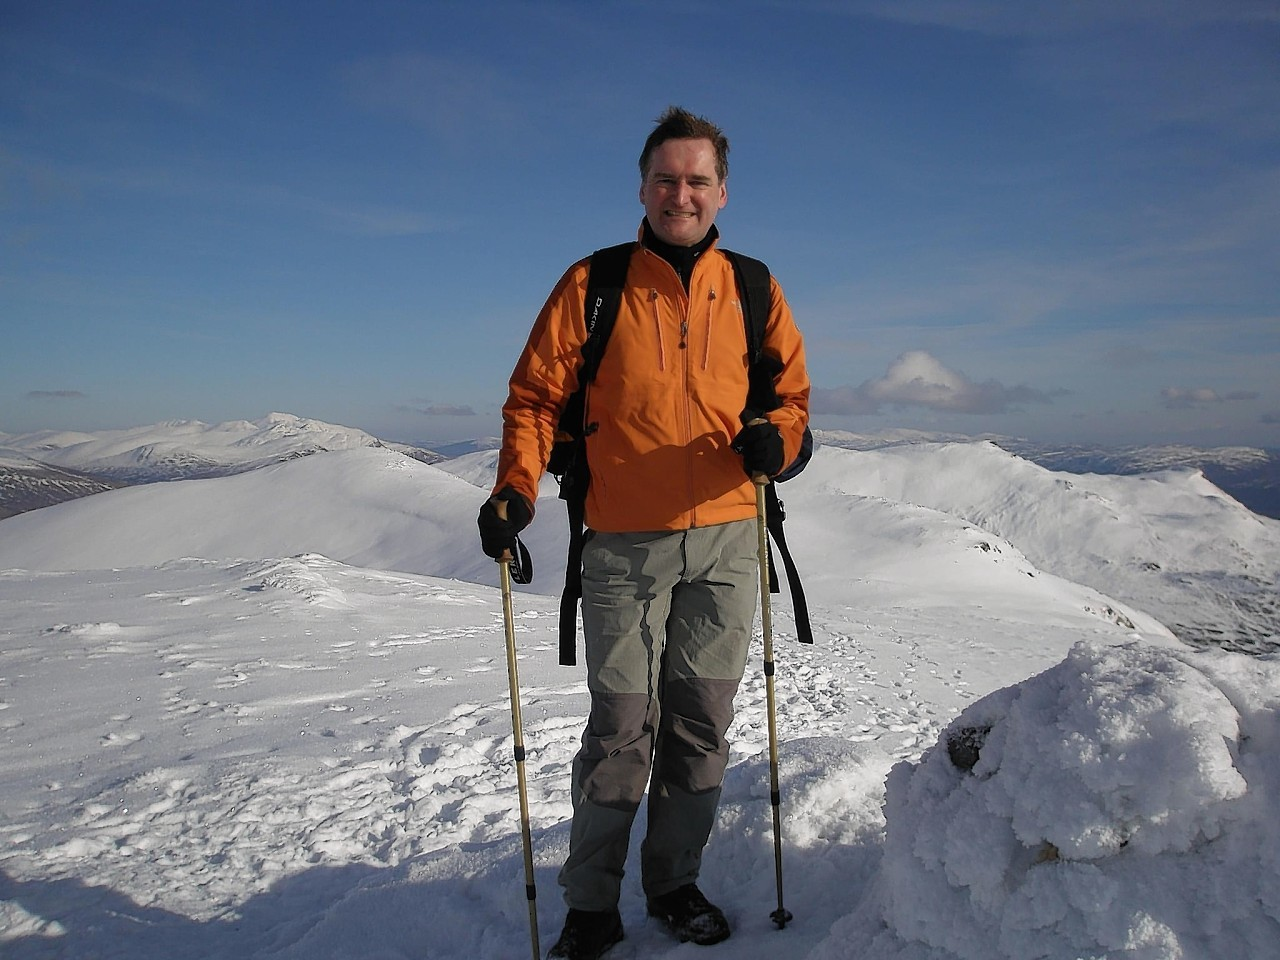 Steven Fogg, of Dess, Near Aboyne, died following the fall near Ben Nevis